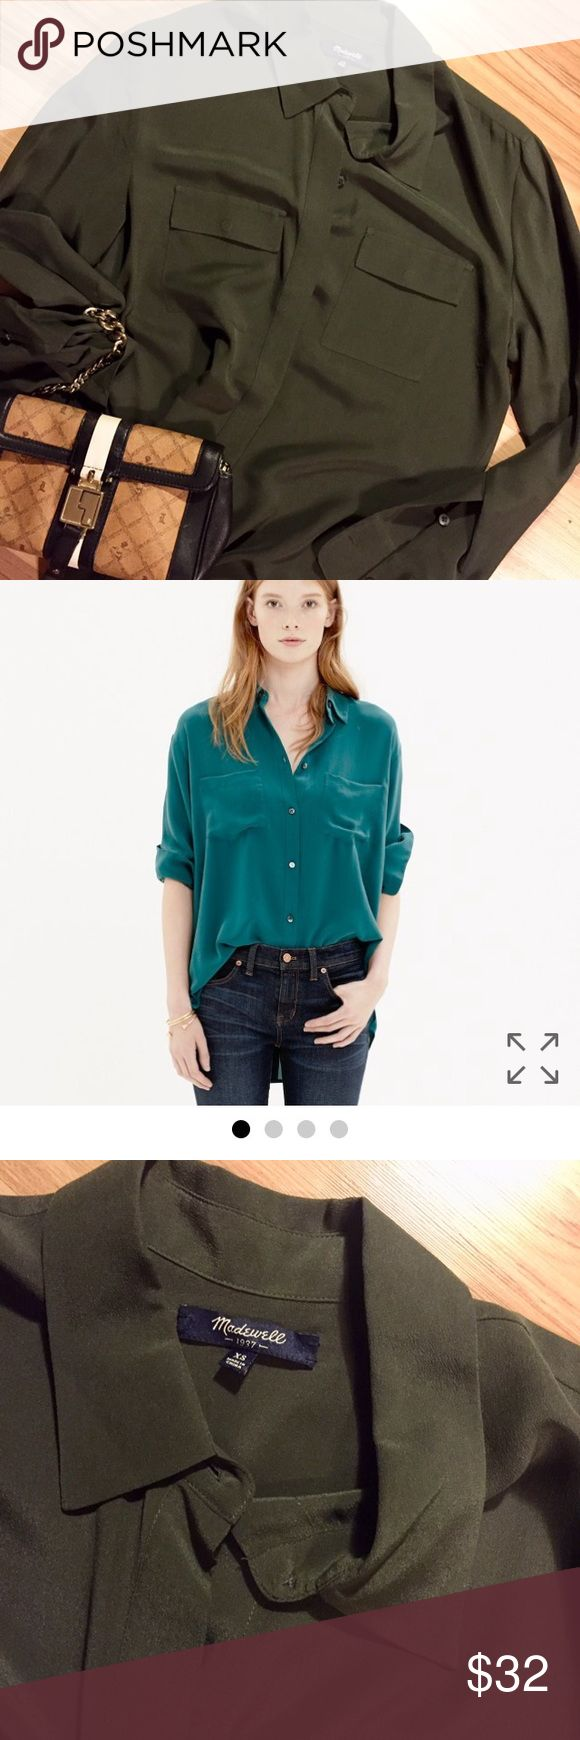 🕵🏻‍♀️ MADEWELL  Silk Spotlight Blouse Loose Fit 🕵🏻‍♀️ After close inspection you will see that this blouse is Made Well! ✔️ Note modeled shirt is similar. One for sale has hidden buttons and is more olive green. Worn a few times. EUC Madewell Tops Button Down Shirts